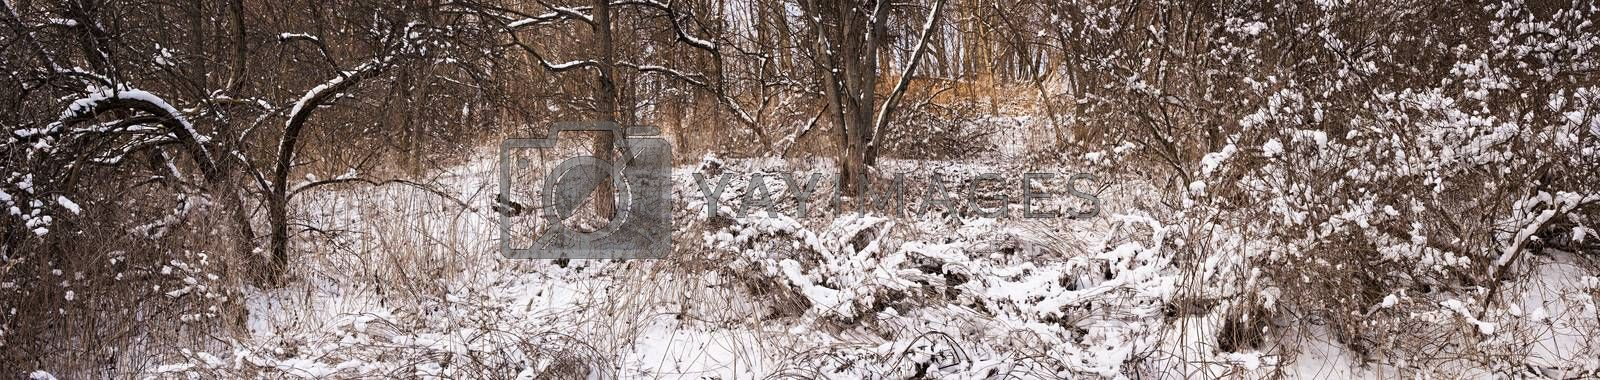 Winter panoramic landscape of trees and plants in forest with snow